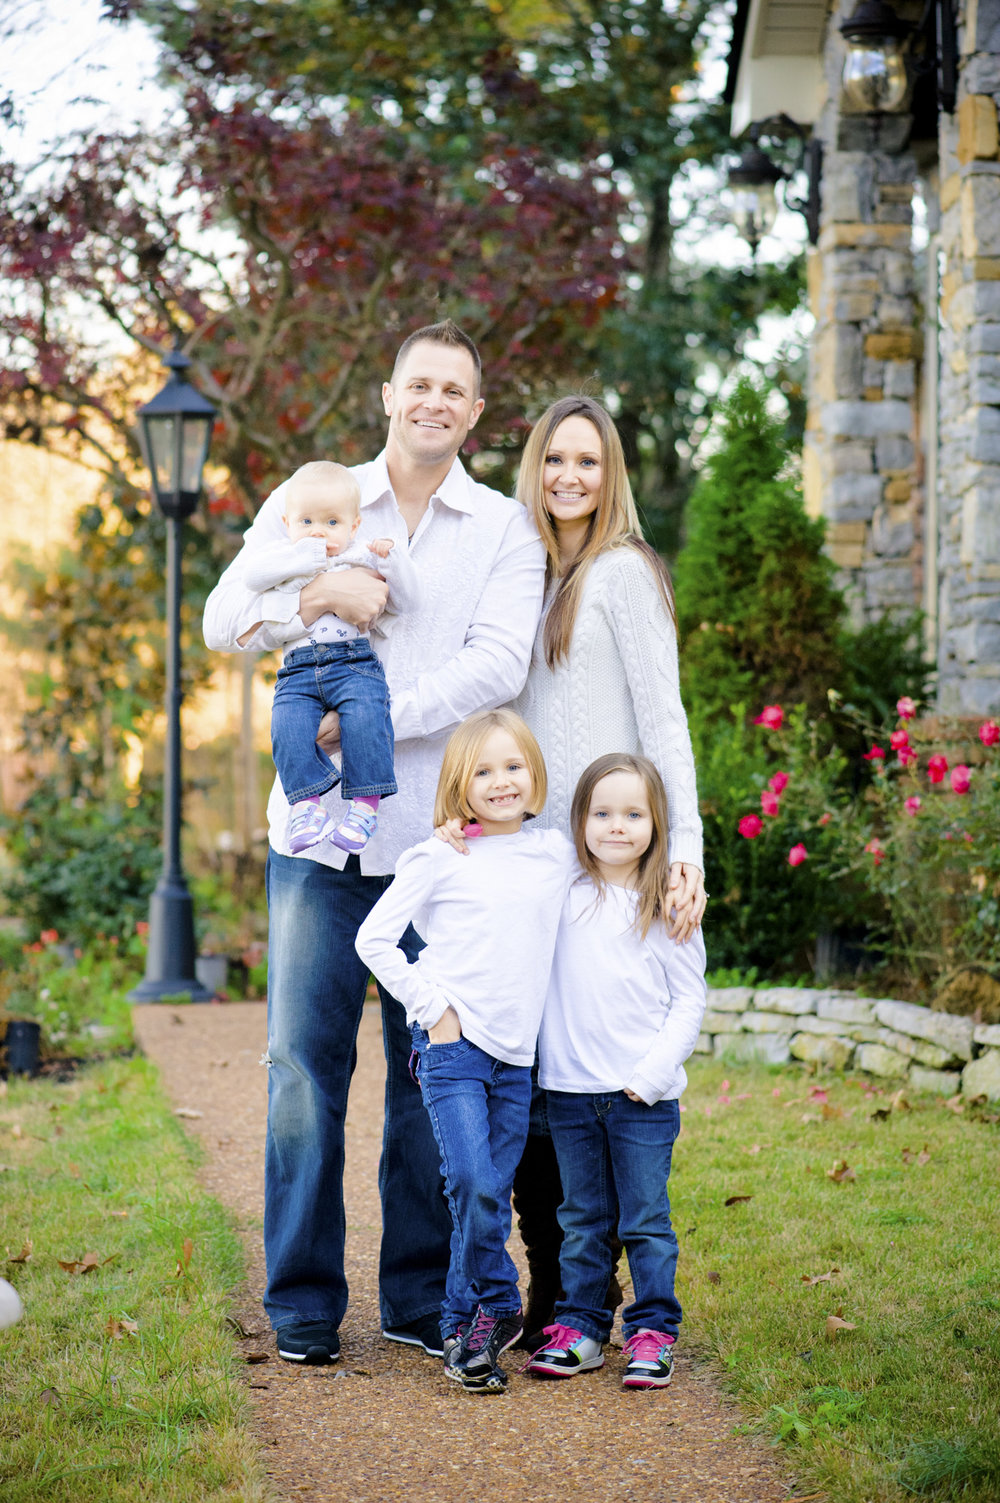 Family Photographer Nashville Tennessee The Velvet Trunk-0005.jpg